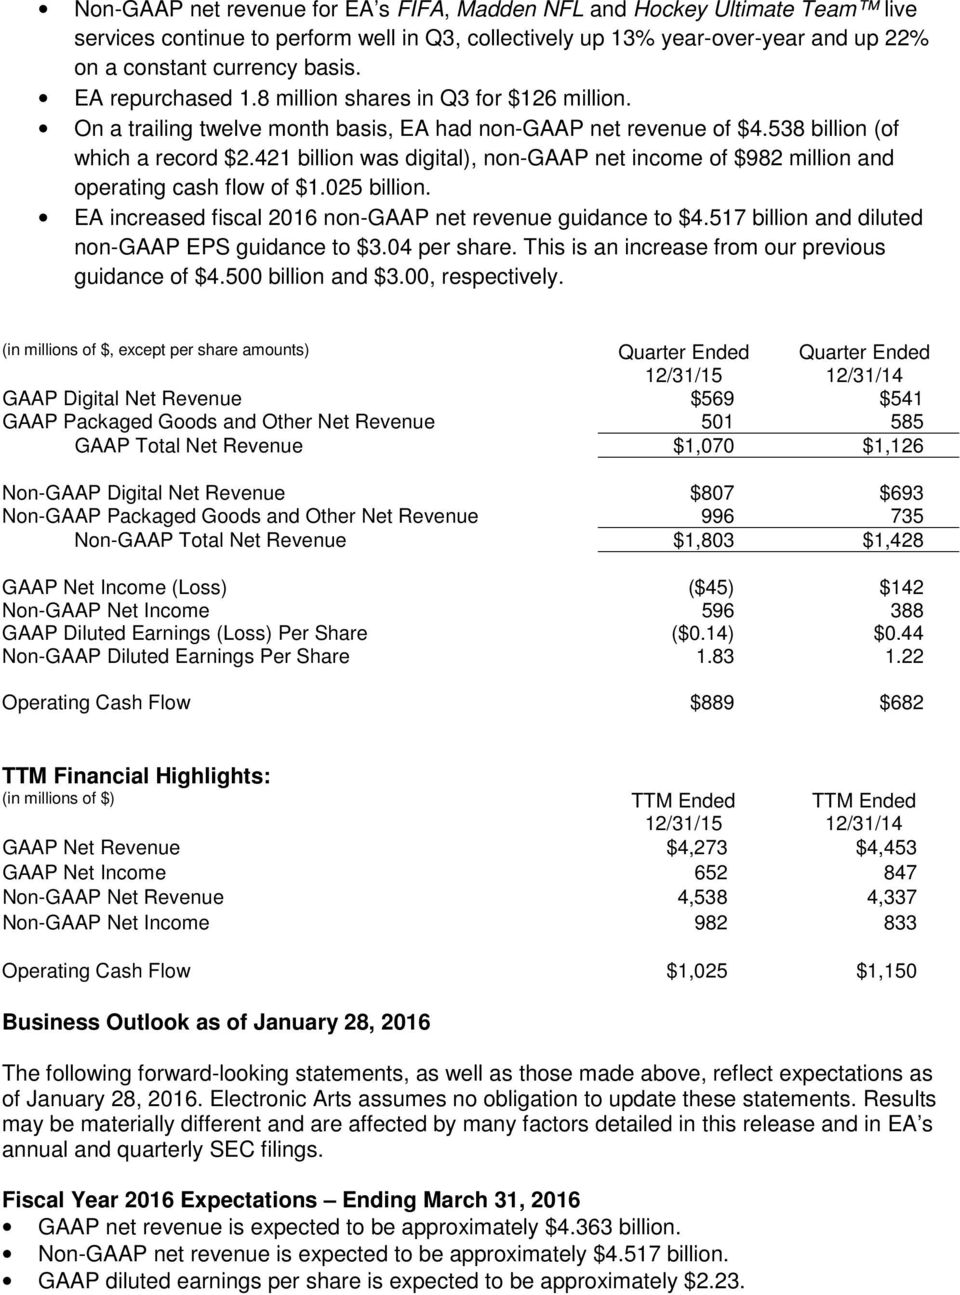 421 billion was digital), non-gaap net income of $982 million and operating cash flow of $1.025 billion. EA increased fiscal 2016 non-gaap net revenue guidance to $4.